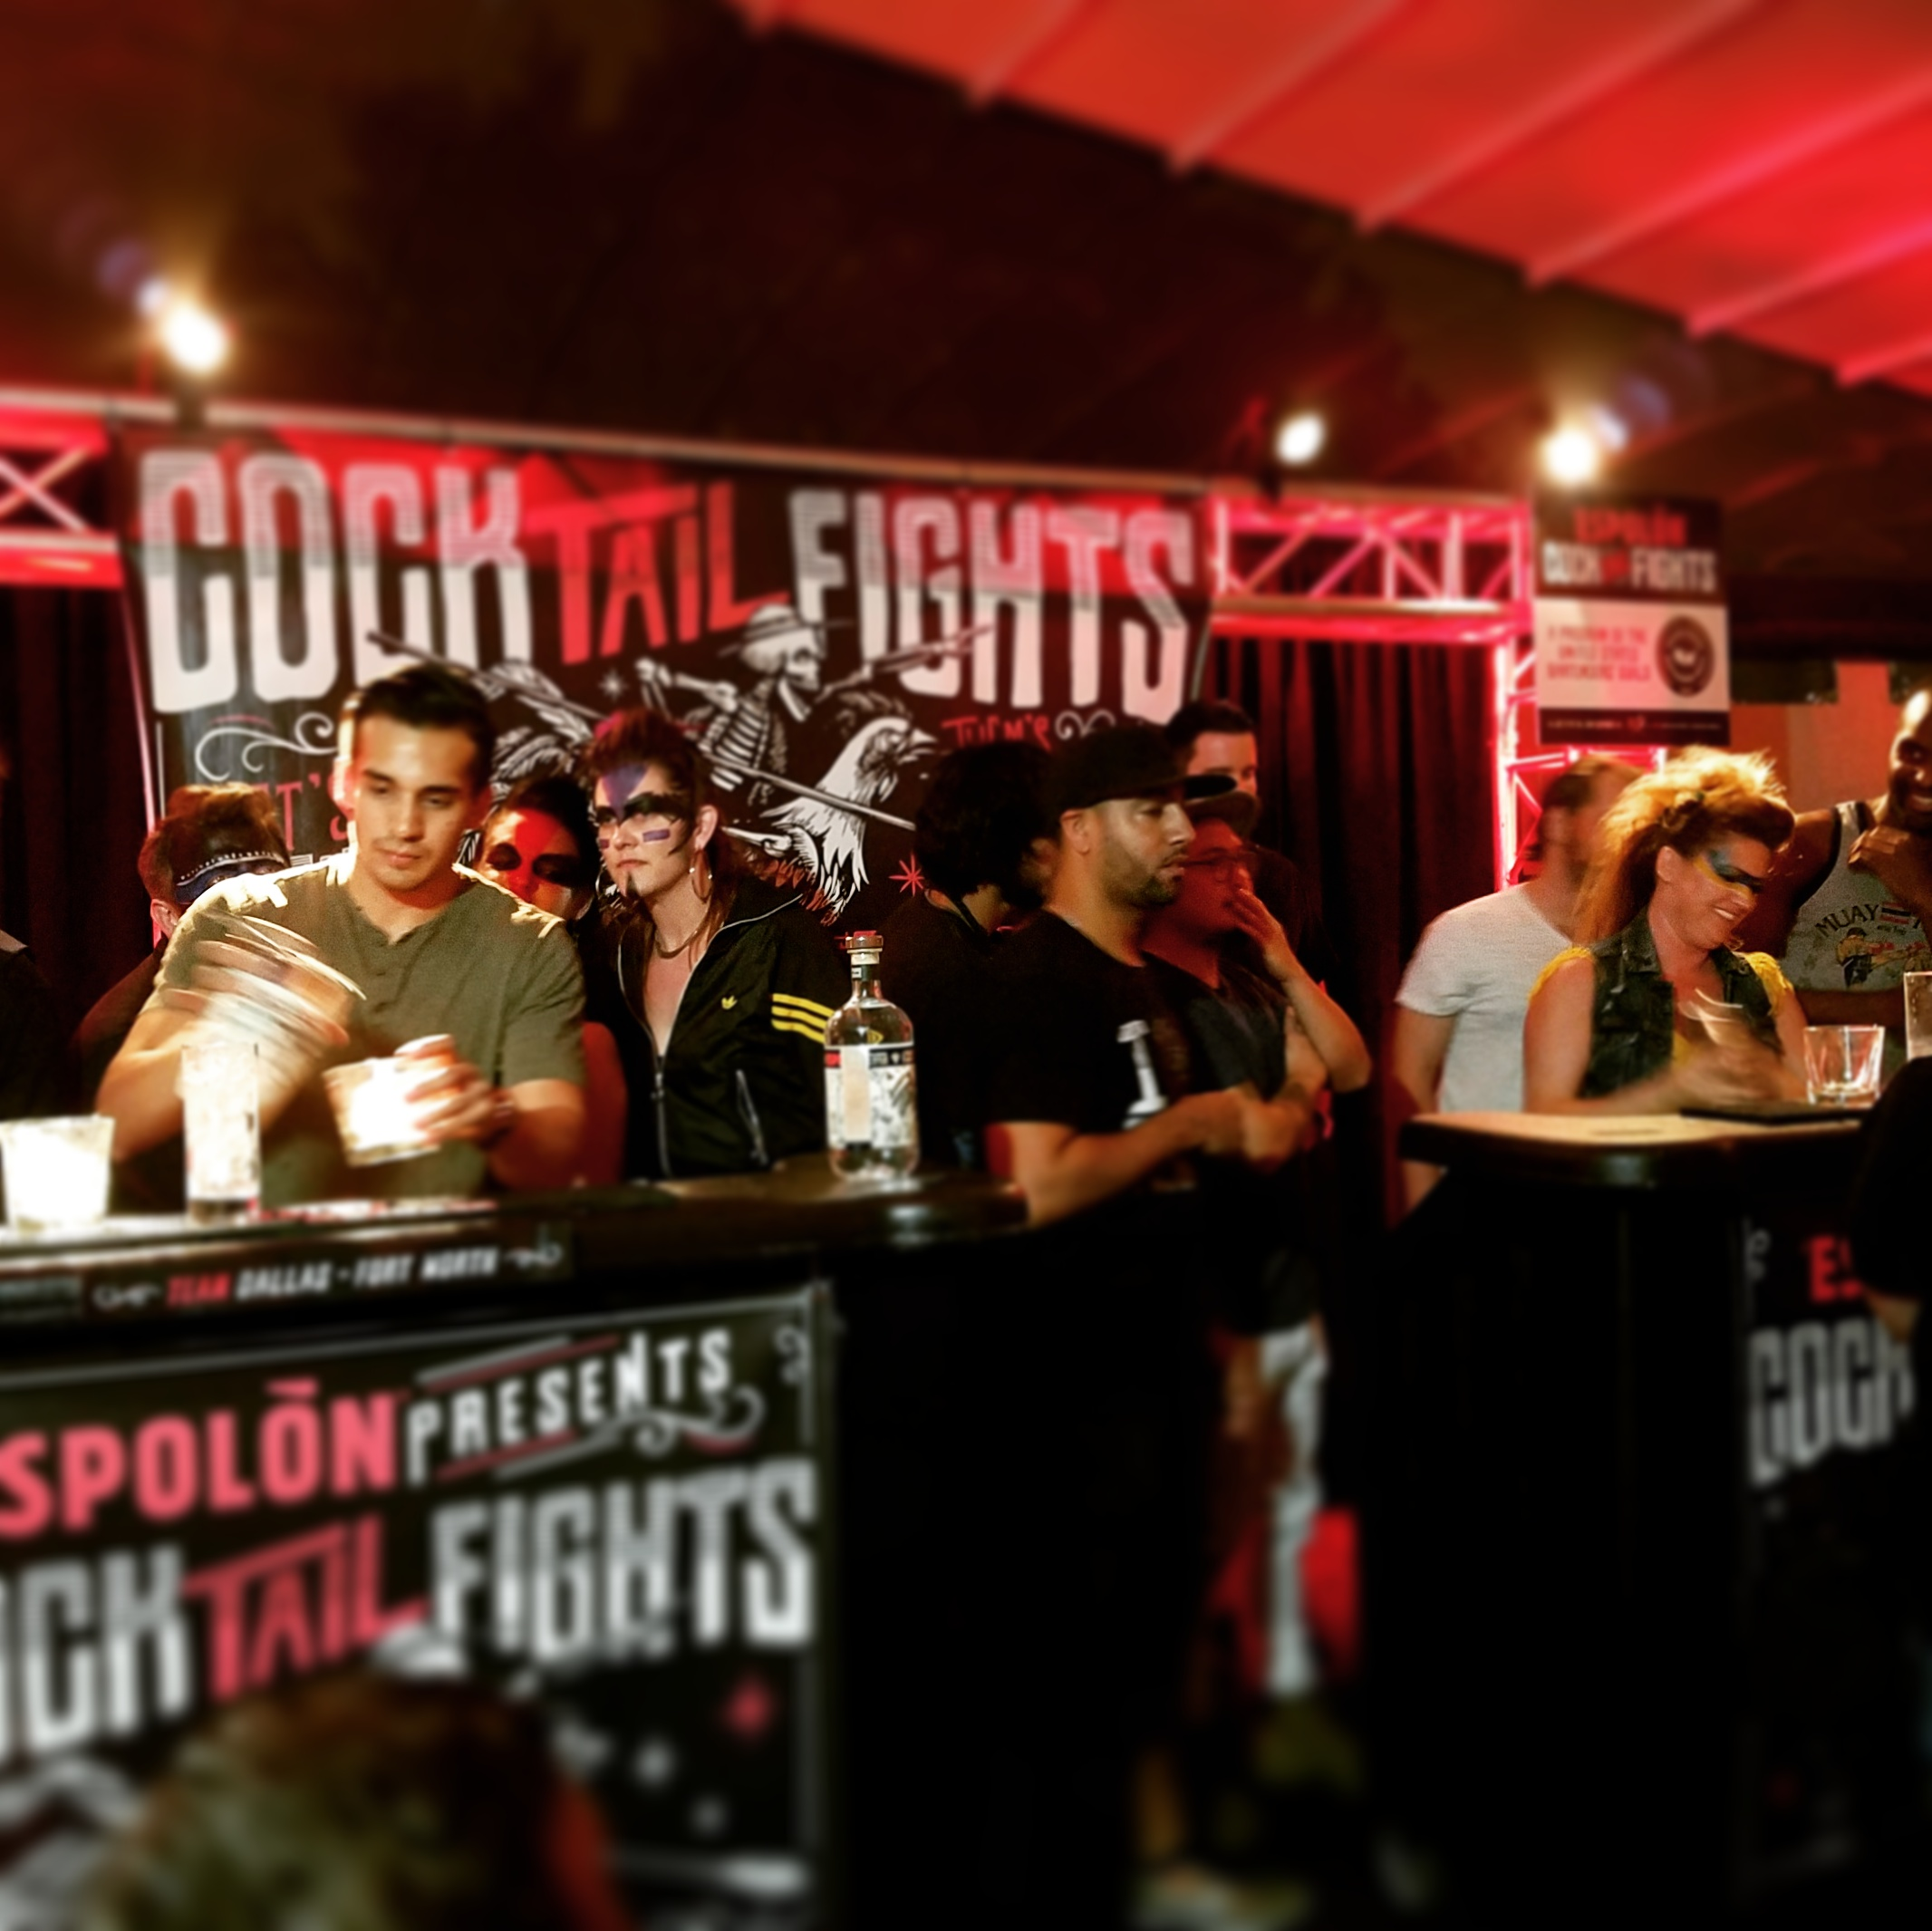 Espolon Cocktail Fight 2016